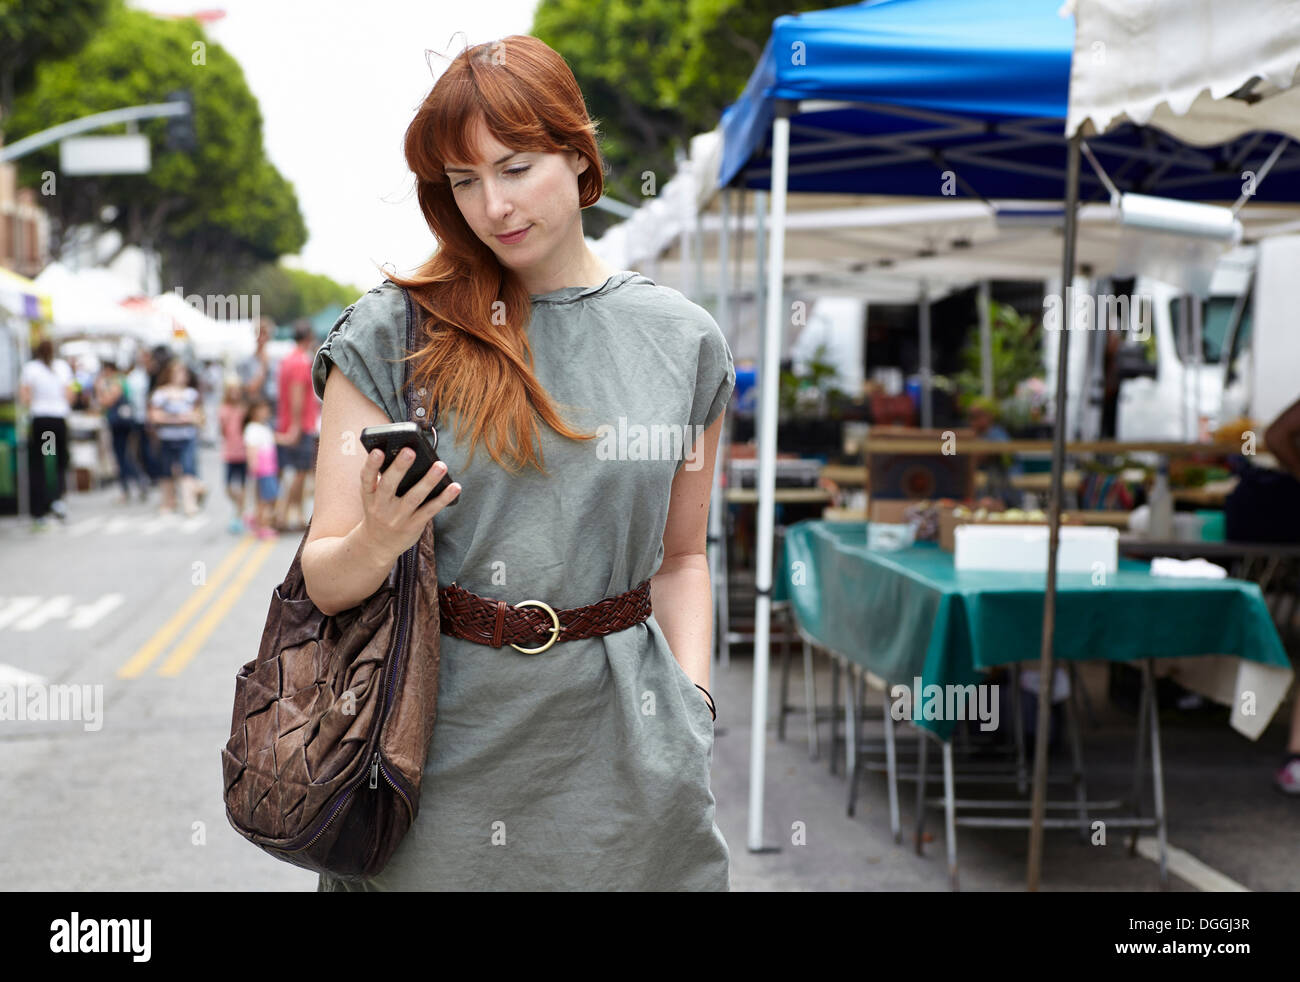 Mid adult woman looking at mobile phone in city Photo Stock